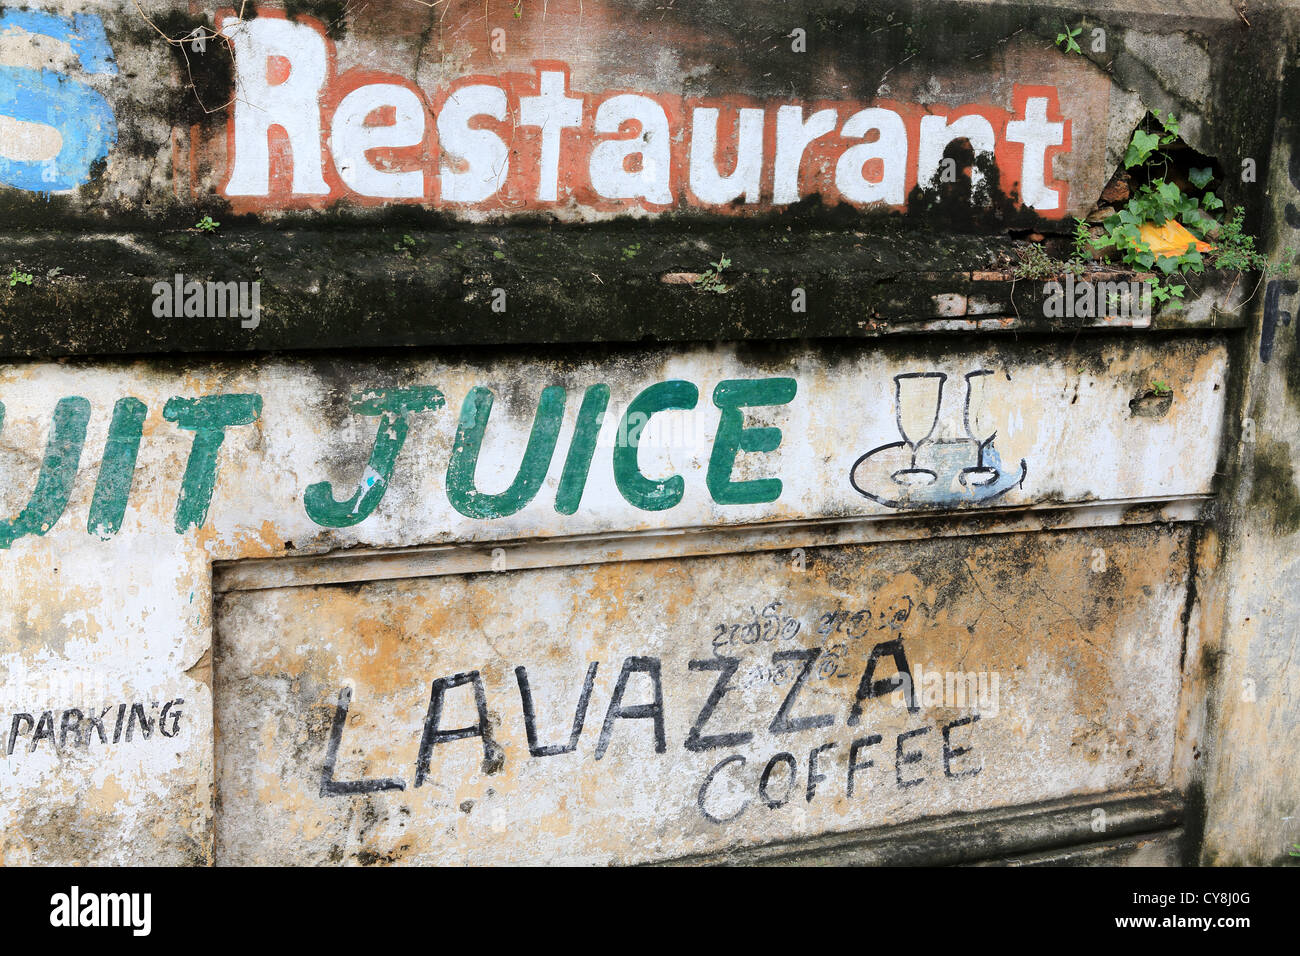 Fading restaurant sign painted on wall inside Galle Fort, Sri Lanka. - Stock Image